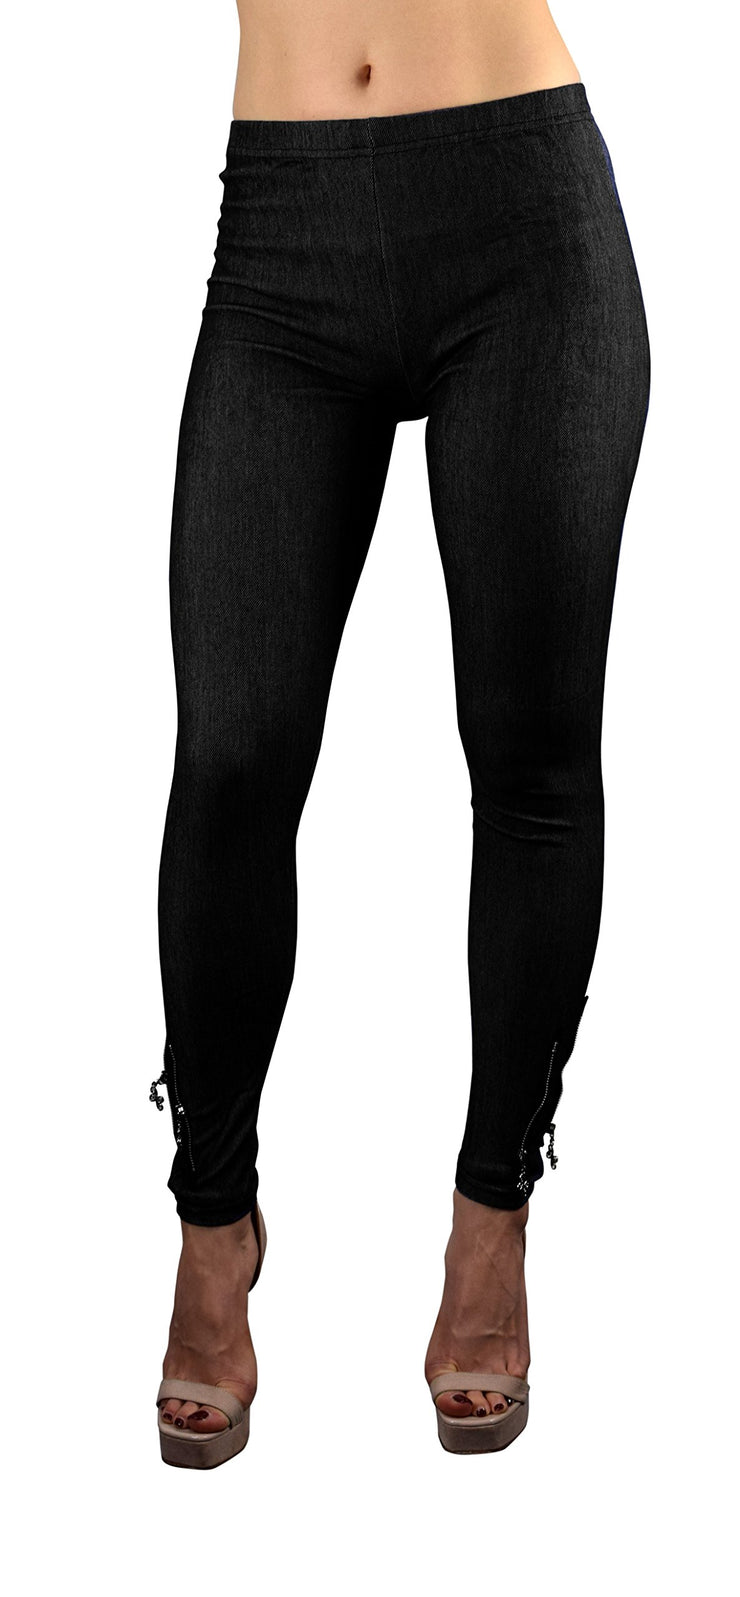 Peach Couture Womens Full Length Ankle Zip Stretchable Jeggings Leggings